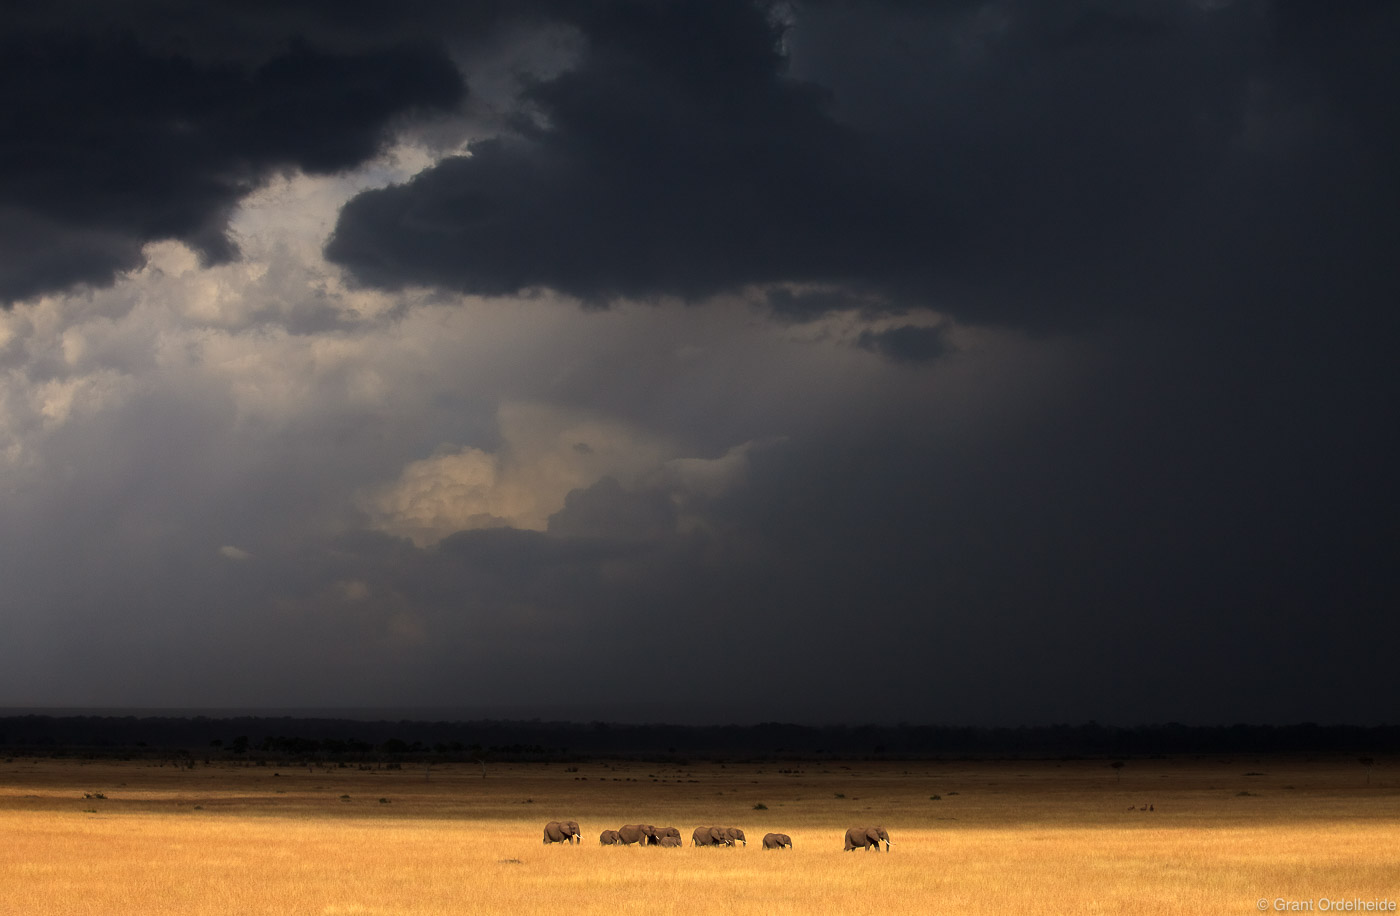 A herd of elephants make their way across the Mara as a torrential rain storm bears down upon them.